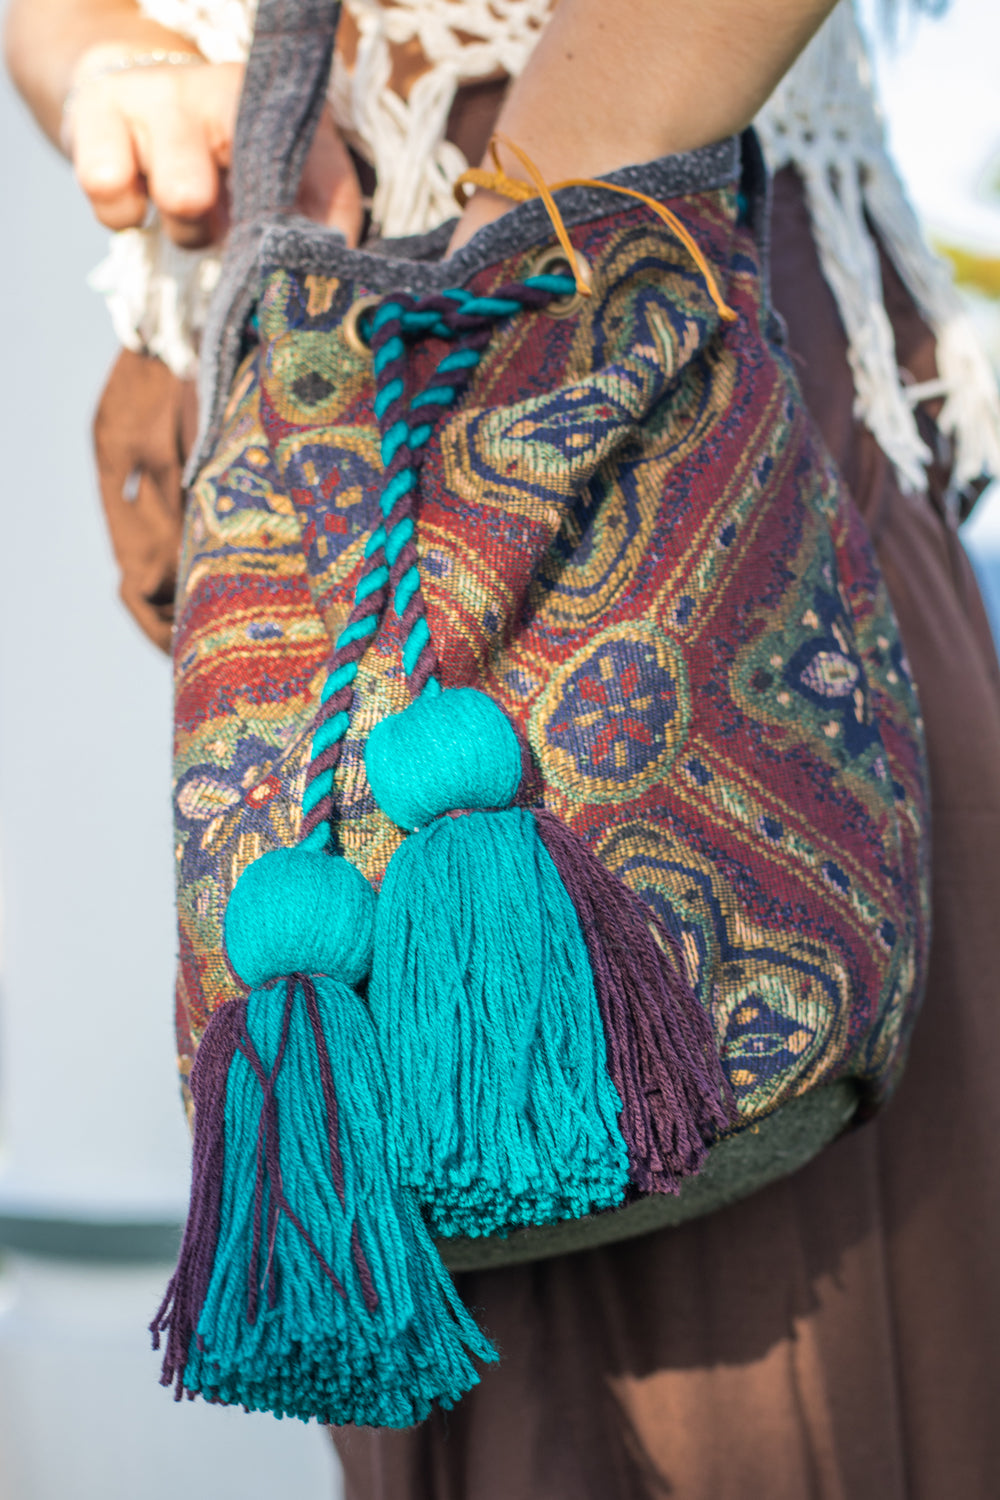 Boho Chic drawstring bag with blue tassels